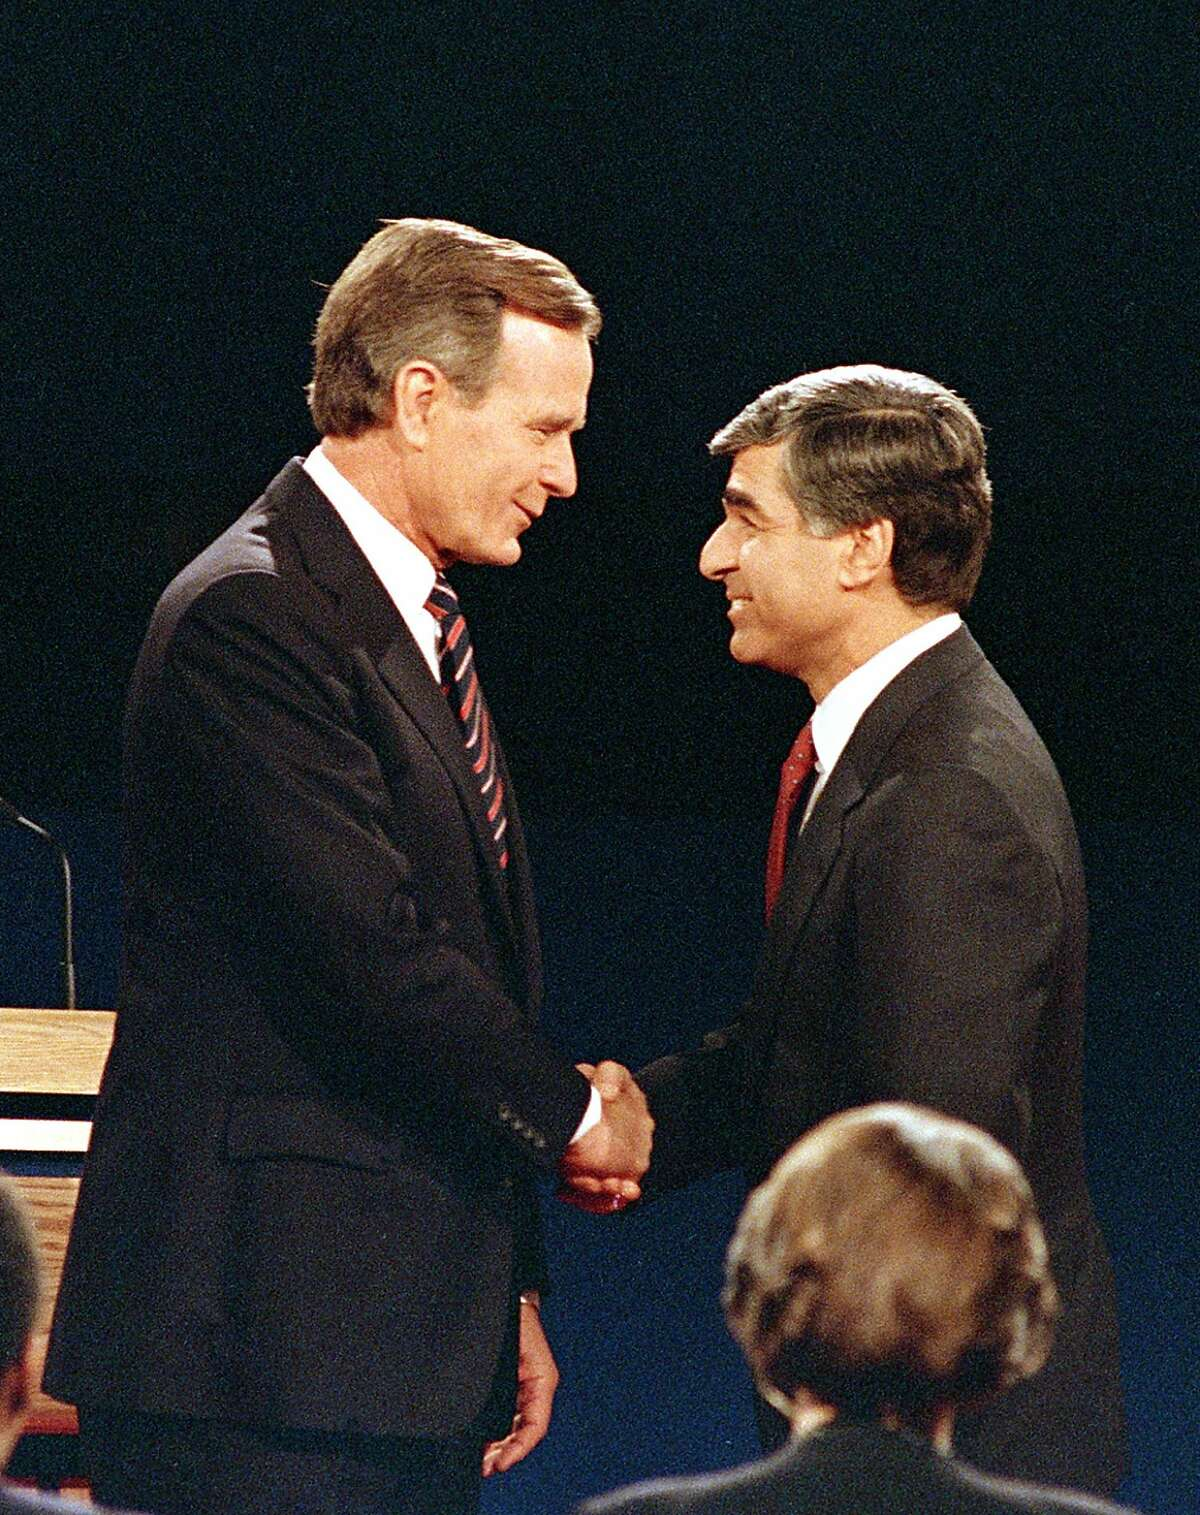 FILE - In this Oct. 13, 1988 file photo, Democratic presidential candidate and Massachusetts Gov. Michael Dukakis shakes hands with Vice President and Republican presidential candidate George Bush, left, prior to their second and final presidential debate on UCLA's campus in Los Angeles, Calif. During the debate Dukakis was asked whether he'd favor the death penalty if his wife, Kitty, were raped and murdered. His emotionally detached a classic case of being too cool under fire.